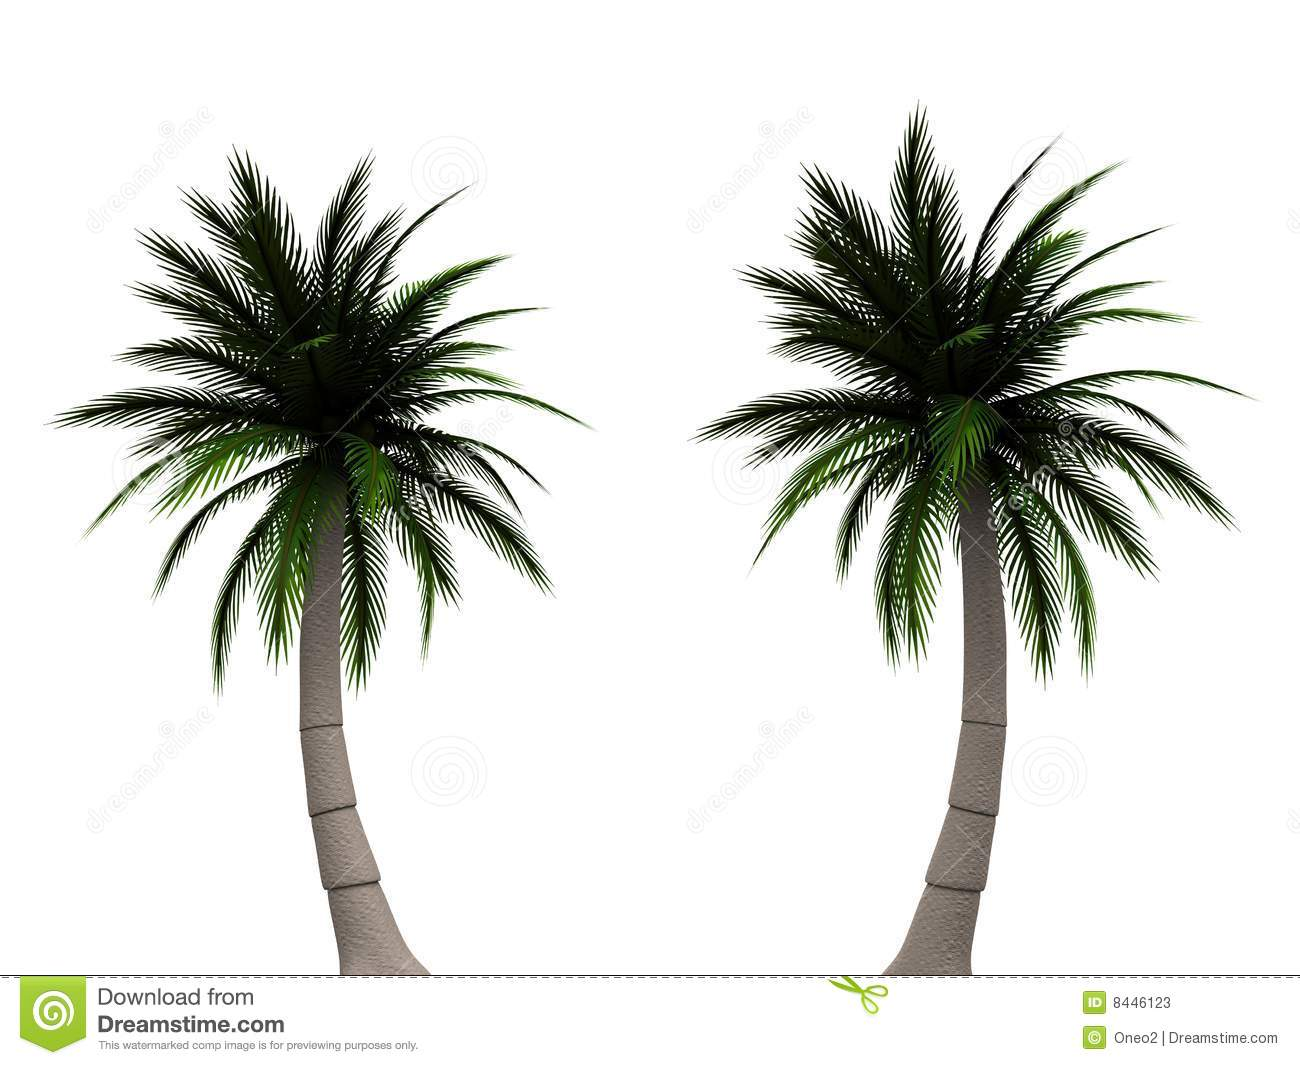 Palm Tree Stock Photos - Image: 8446123 - photo#40